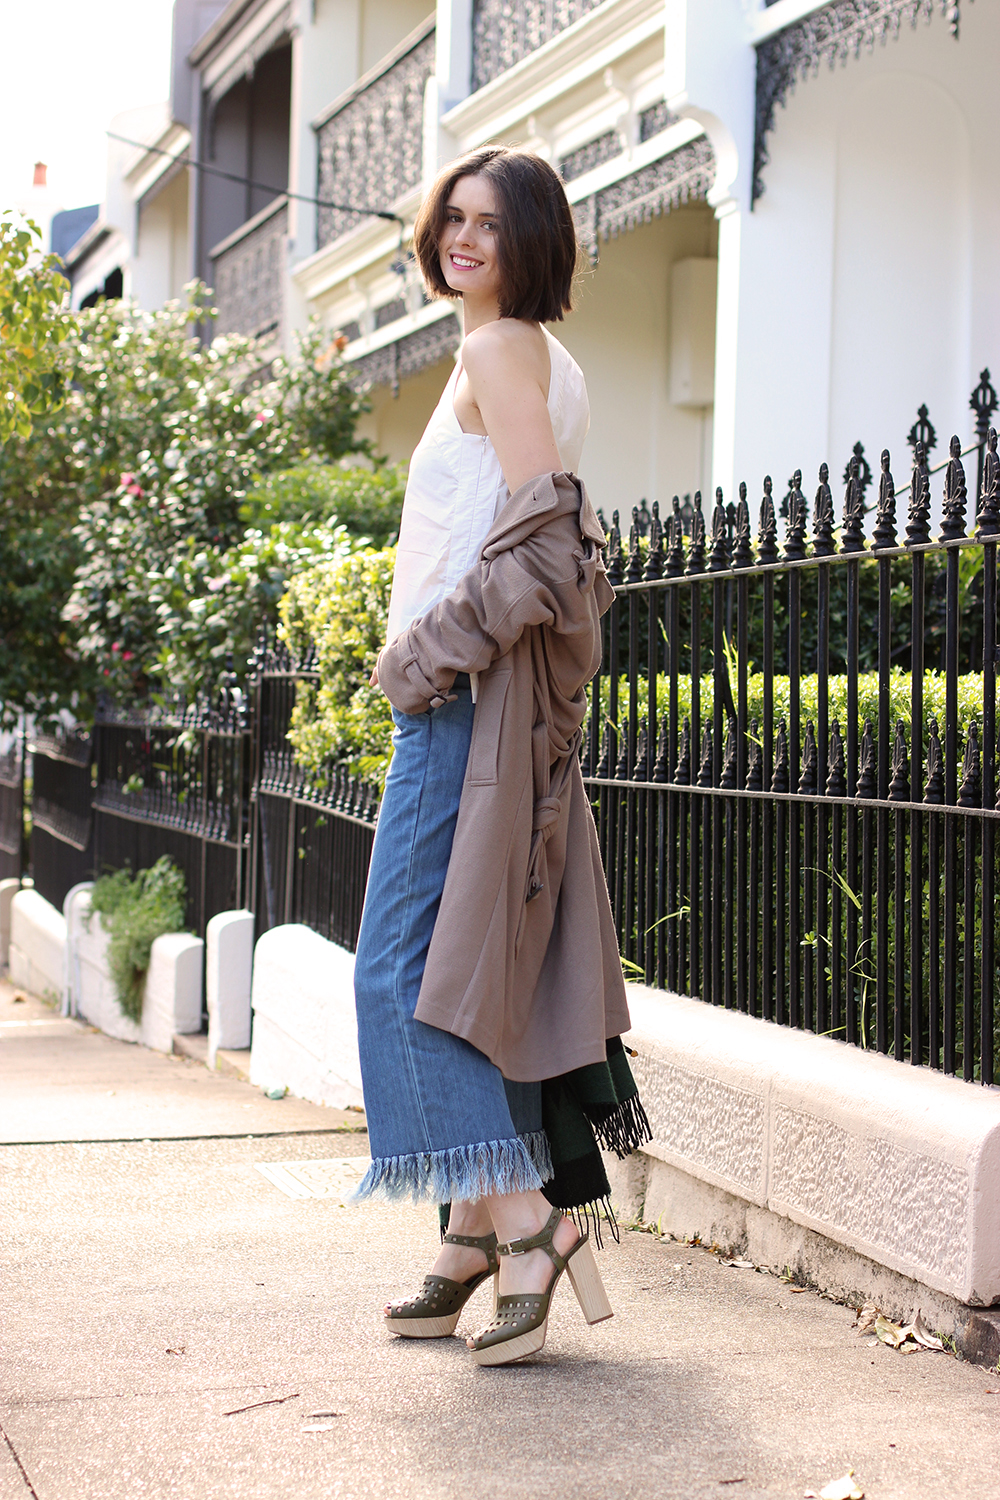 CHLOE HILL | Vale frayed denim culottes and YB J'aime one shoulder top on the streets of Sydney